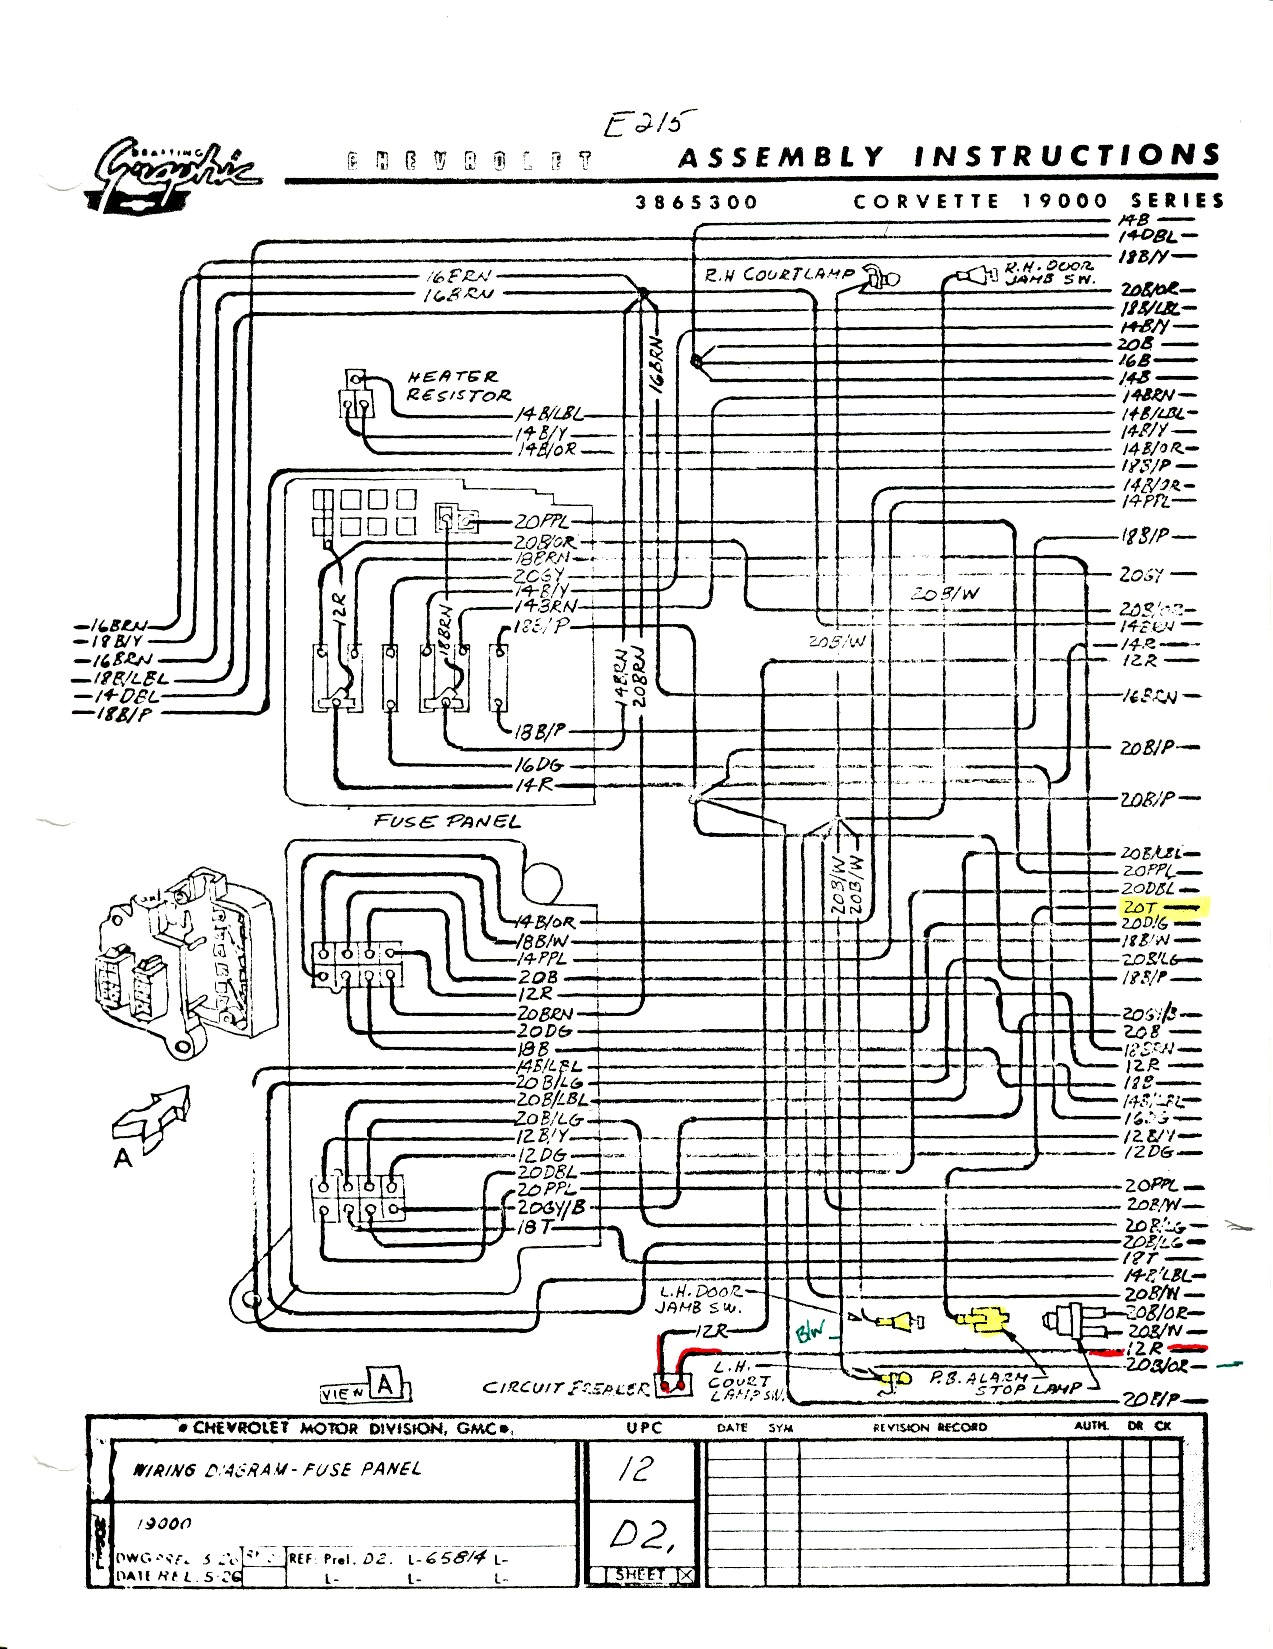 hight resolution of c5 corvette radio wiring diagram 66 corvette 65 corvette radio wiring